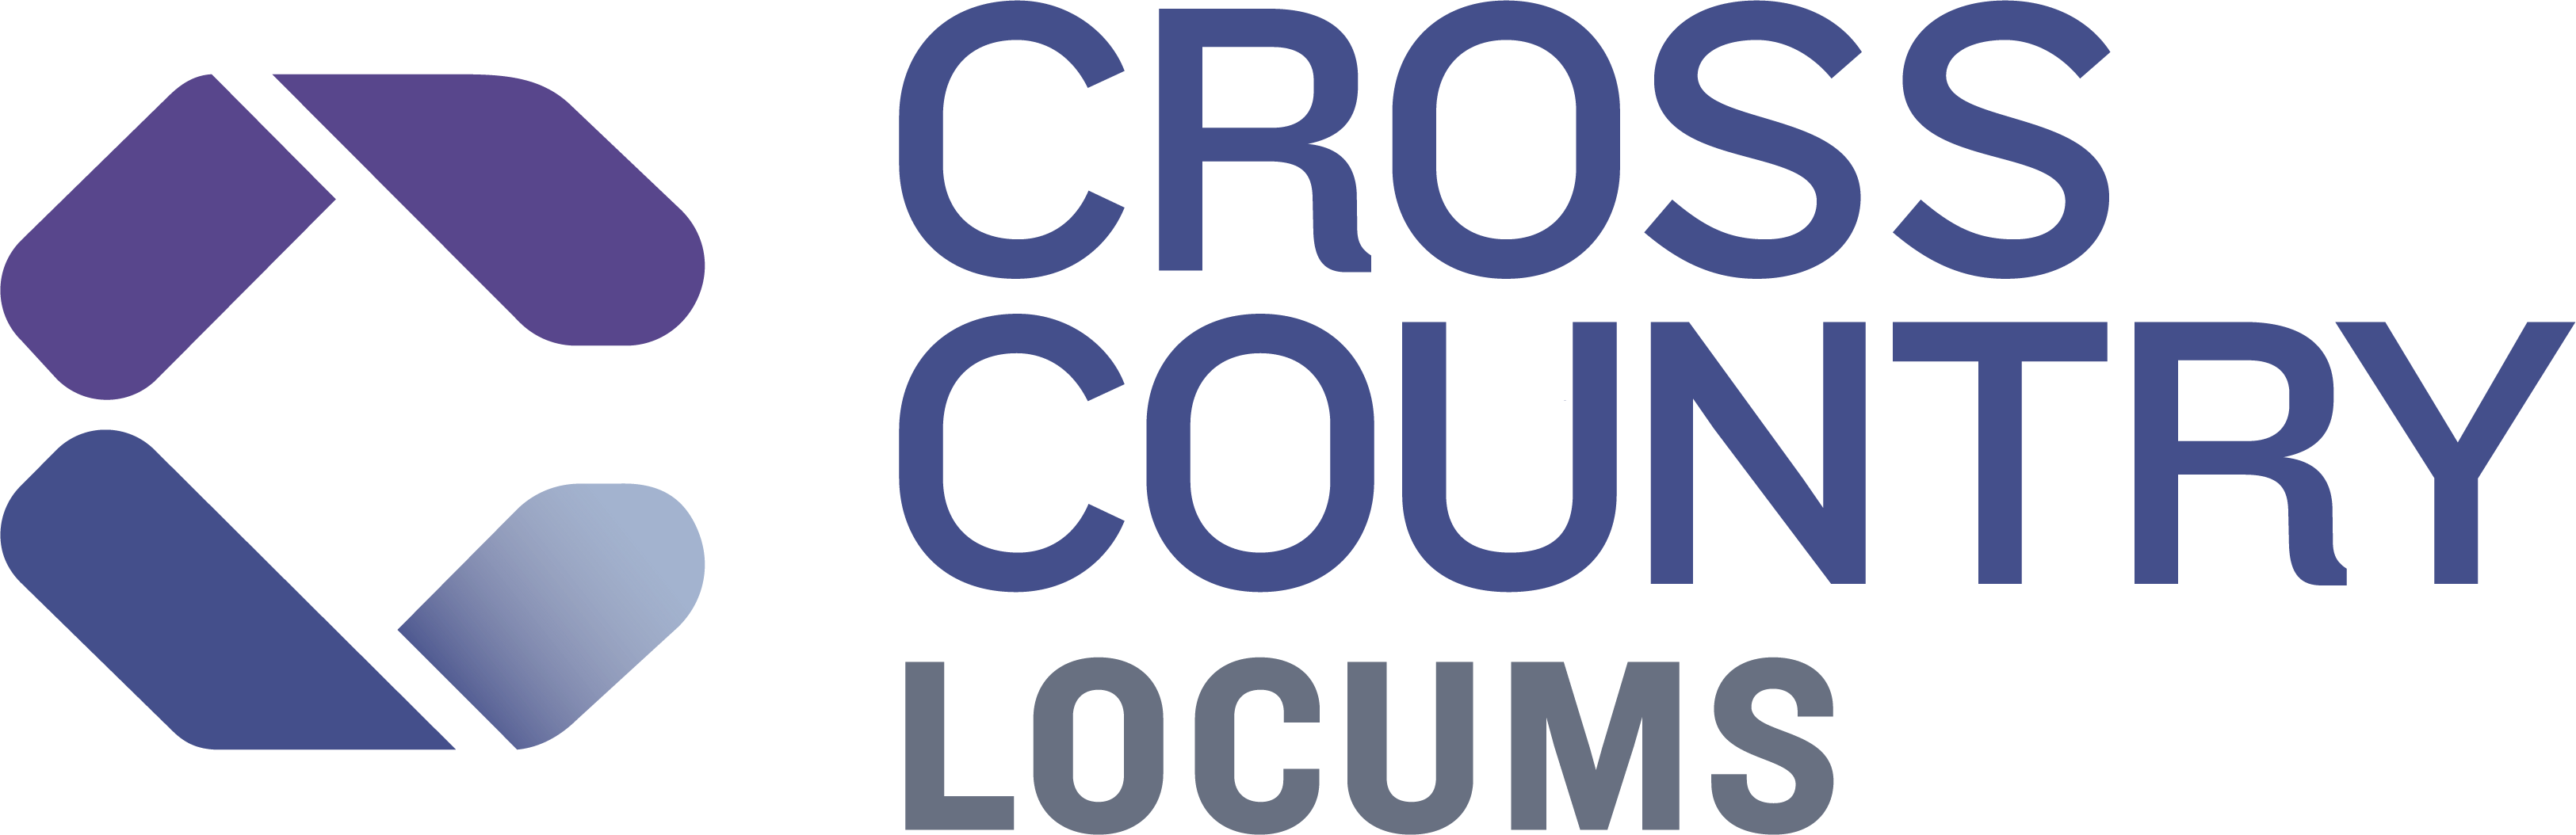 Cross Country Locums (formerly Medical Doctor Associates) Company Logo